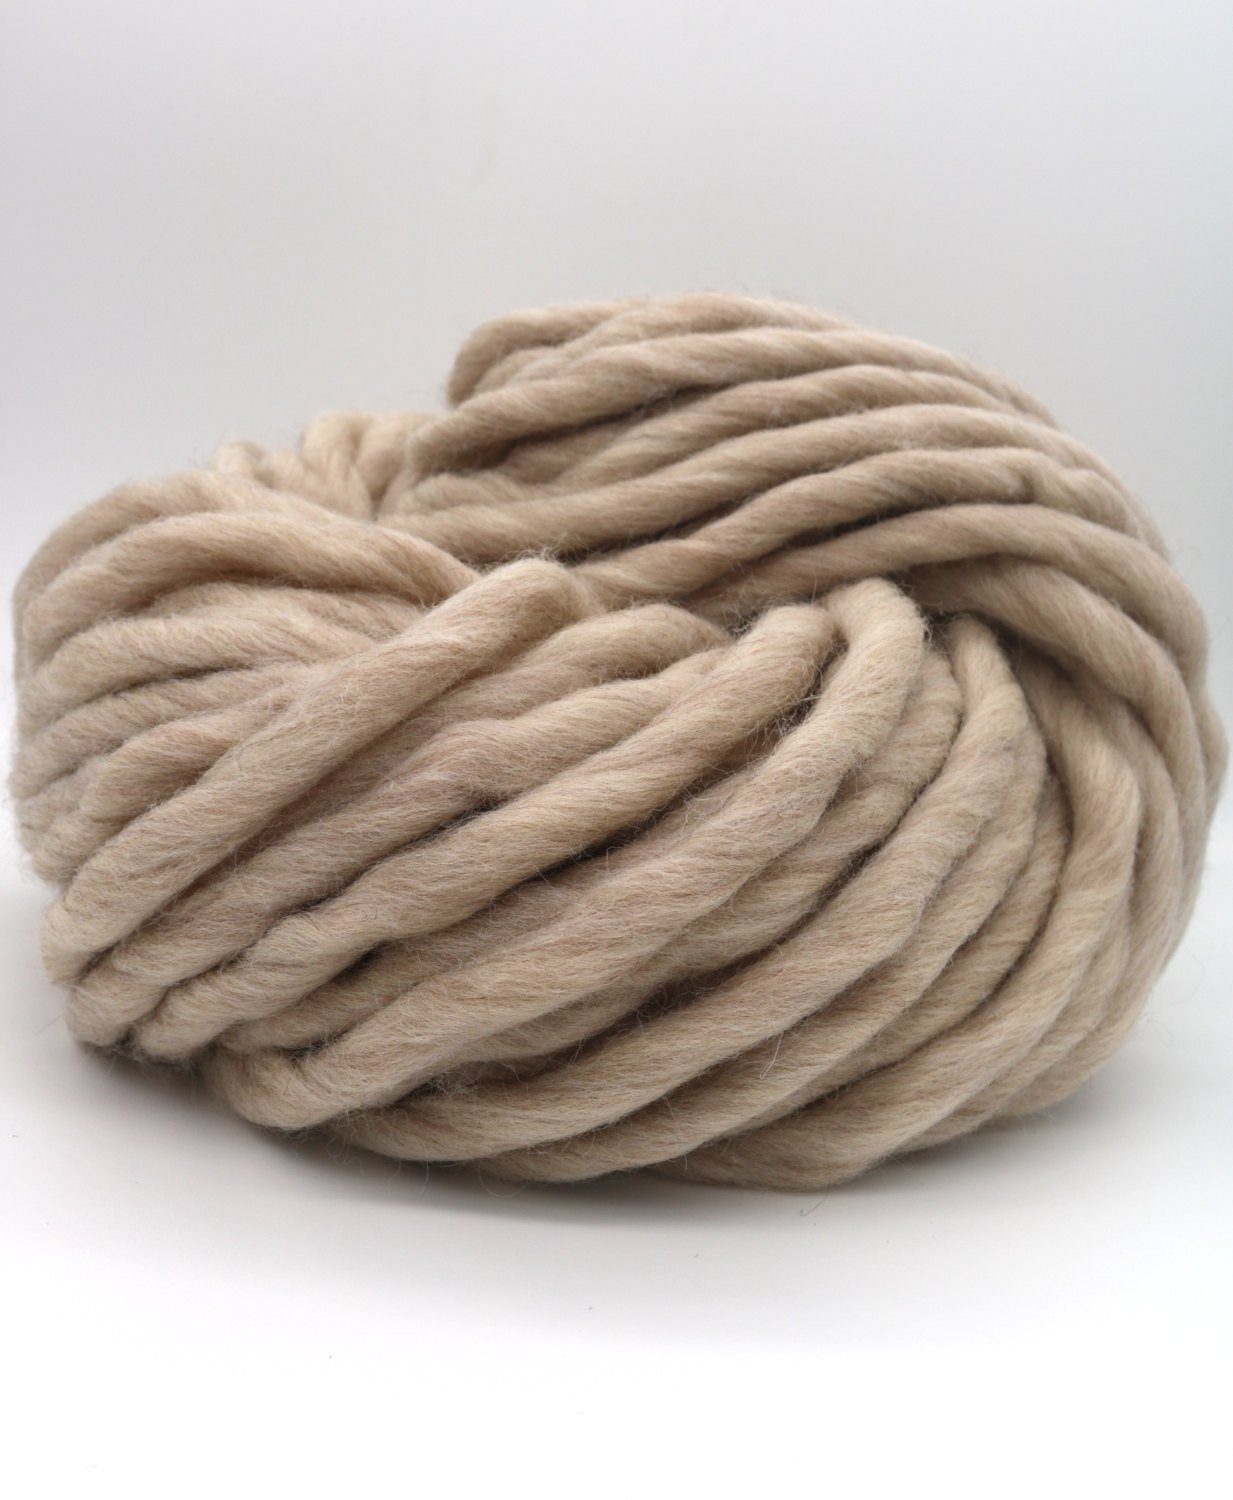 Unique Merino Roving Wool Yarn 1100g Giant Super Bulky Yarn Super Wool Roving Yarn Of Awesome 40 Pictures Wool Roving Yarn